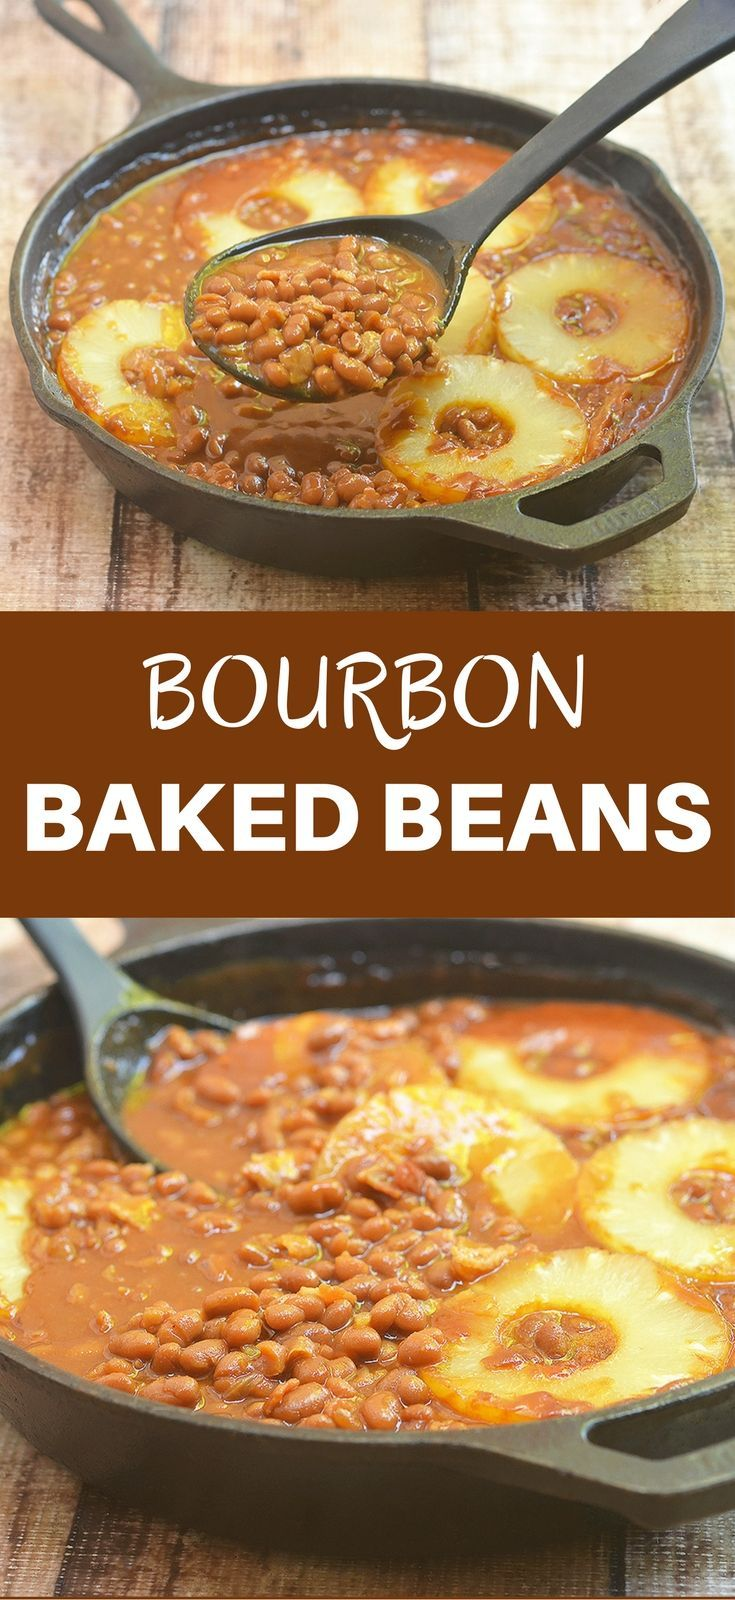 Bourbon Baked Beans are the perfect accompaniment to your favorite summer meals. A delicious medley of sweet, smoky and savory flavors, they're sure to be hit at BBQ parties.